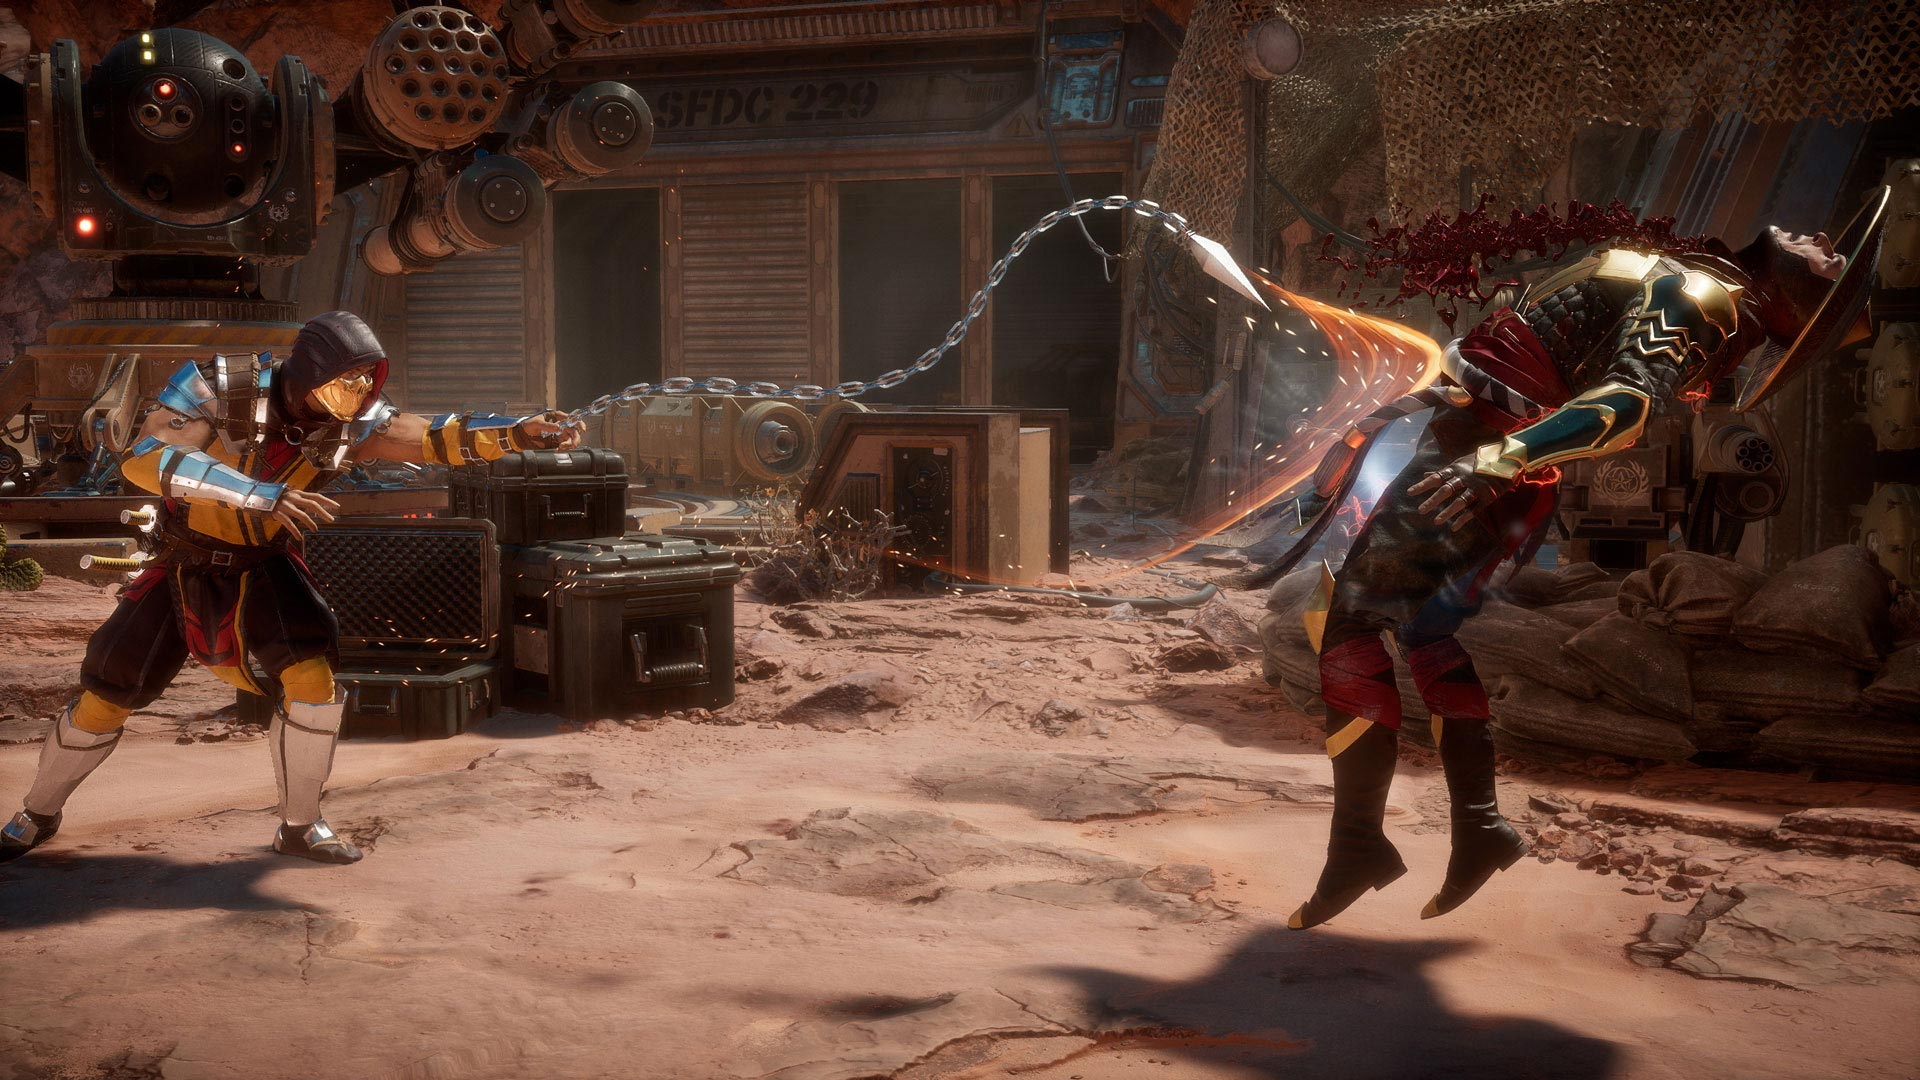 More Mortal Kombat 11 Leaked Characters Appear On Steam Database